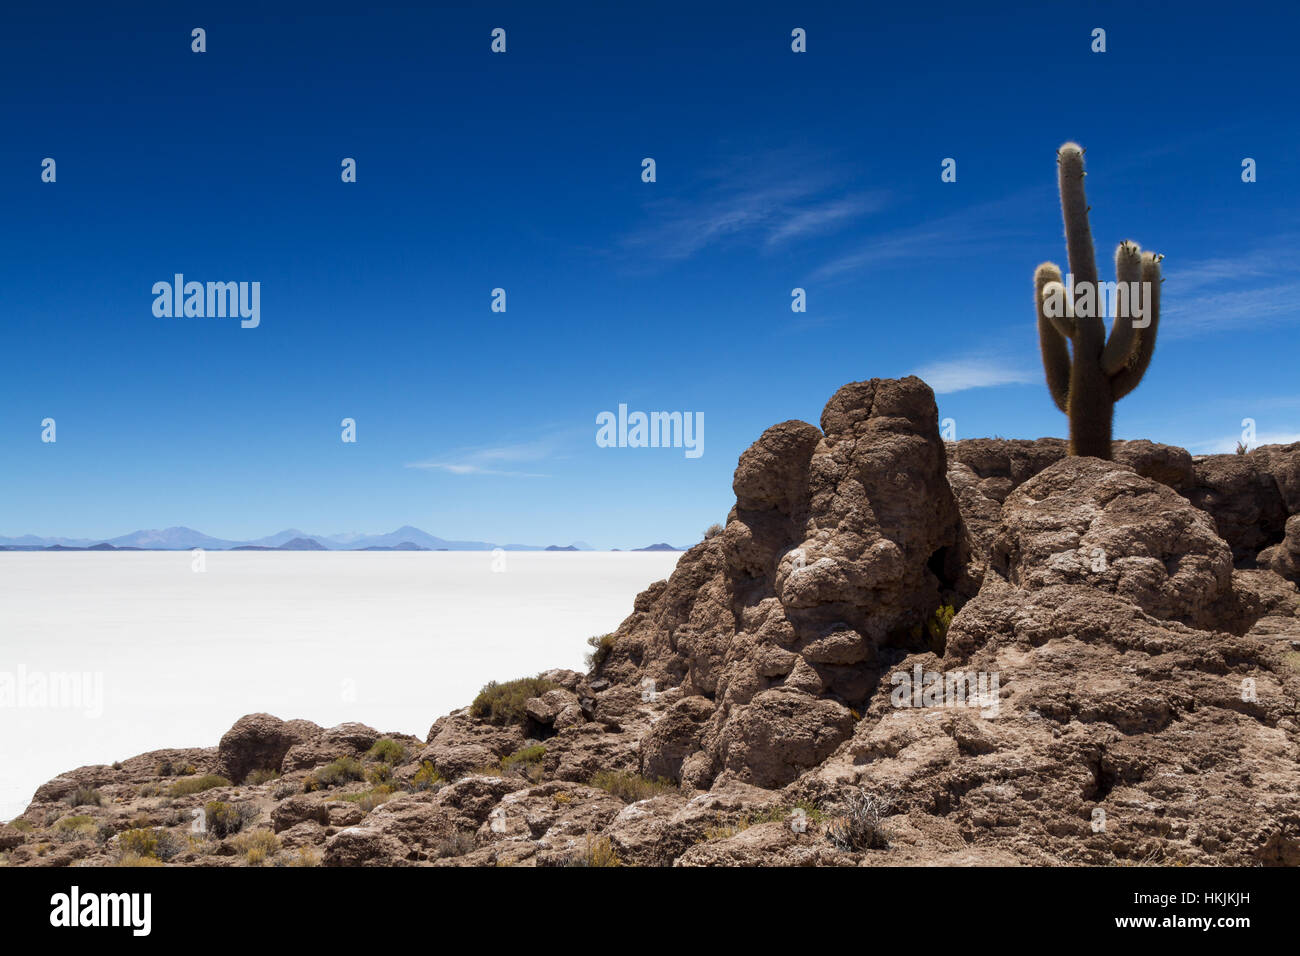 Au point de vue Isla Pia Pia, Salar de Uyuni, Bolivie Photo Stock